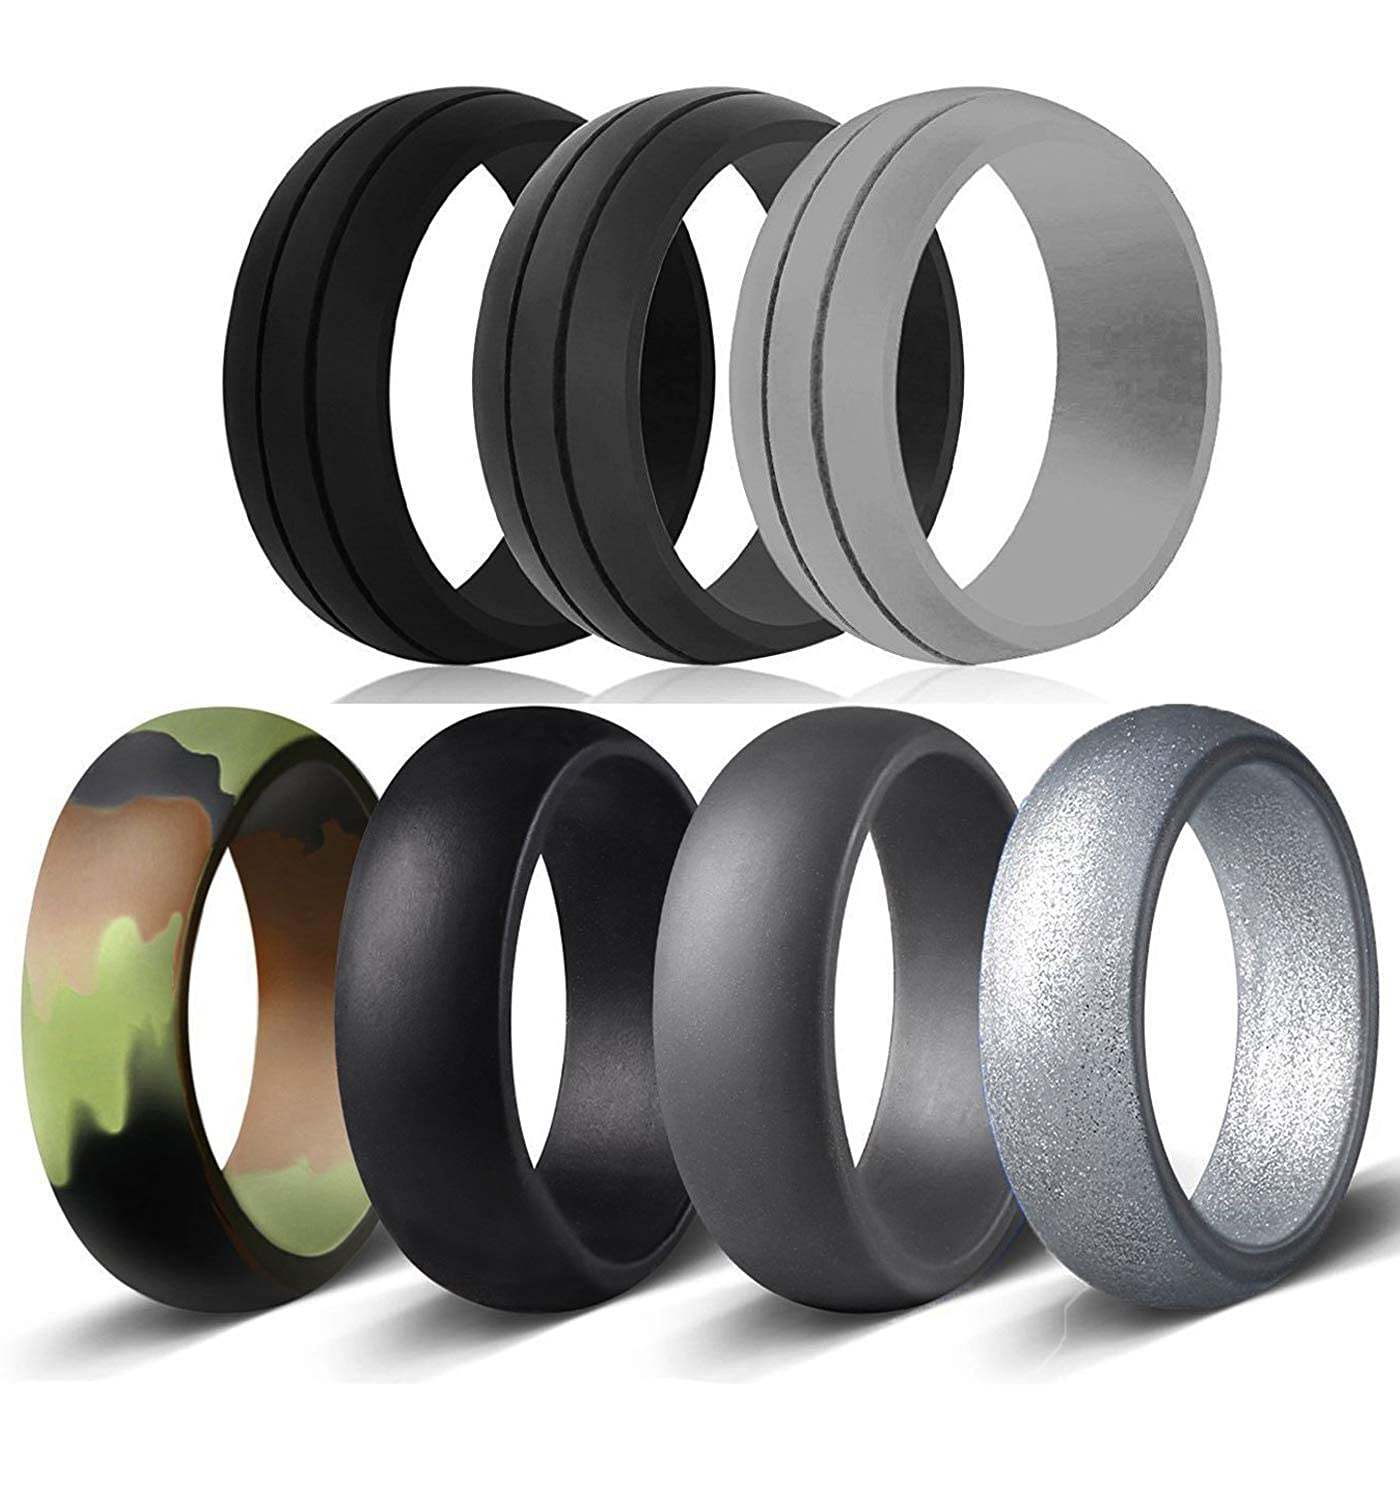 OKLICH Silicone Rings 7 Pack Men's Women's Wedding Band Flexible Work Safety Save Your Finger Rubber Rings